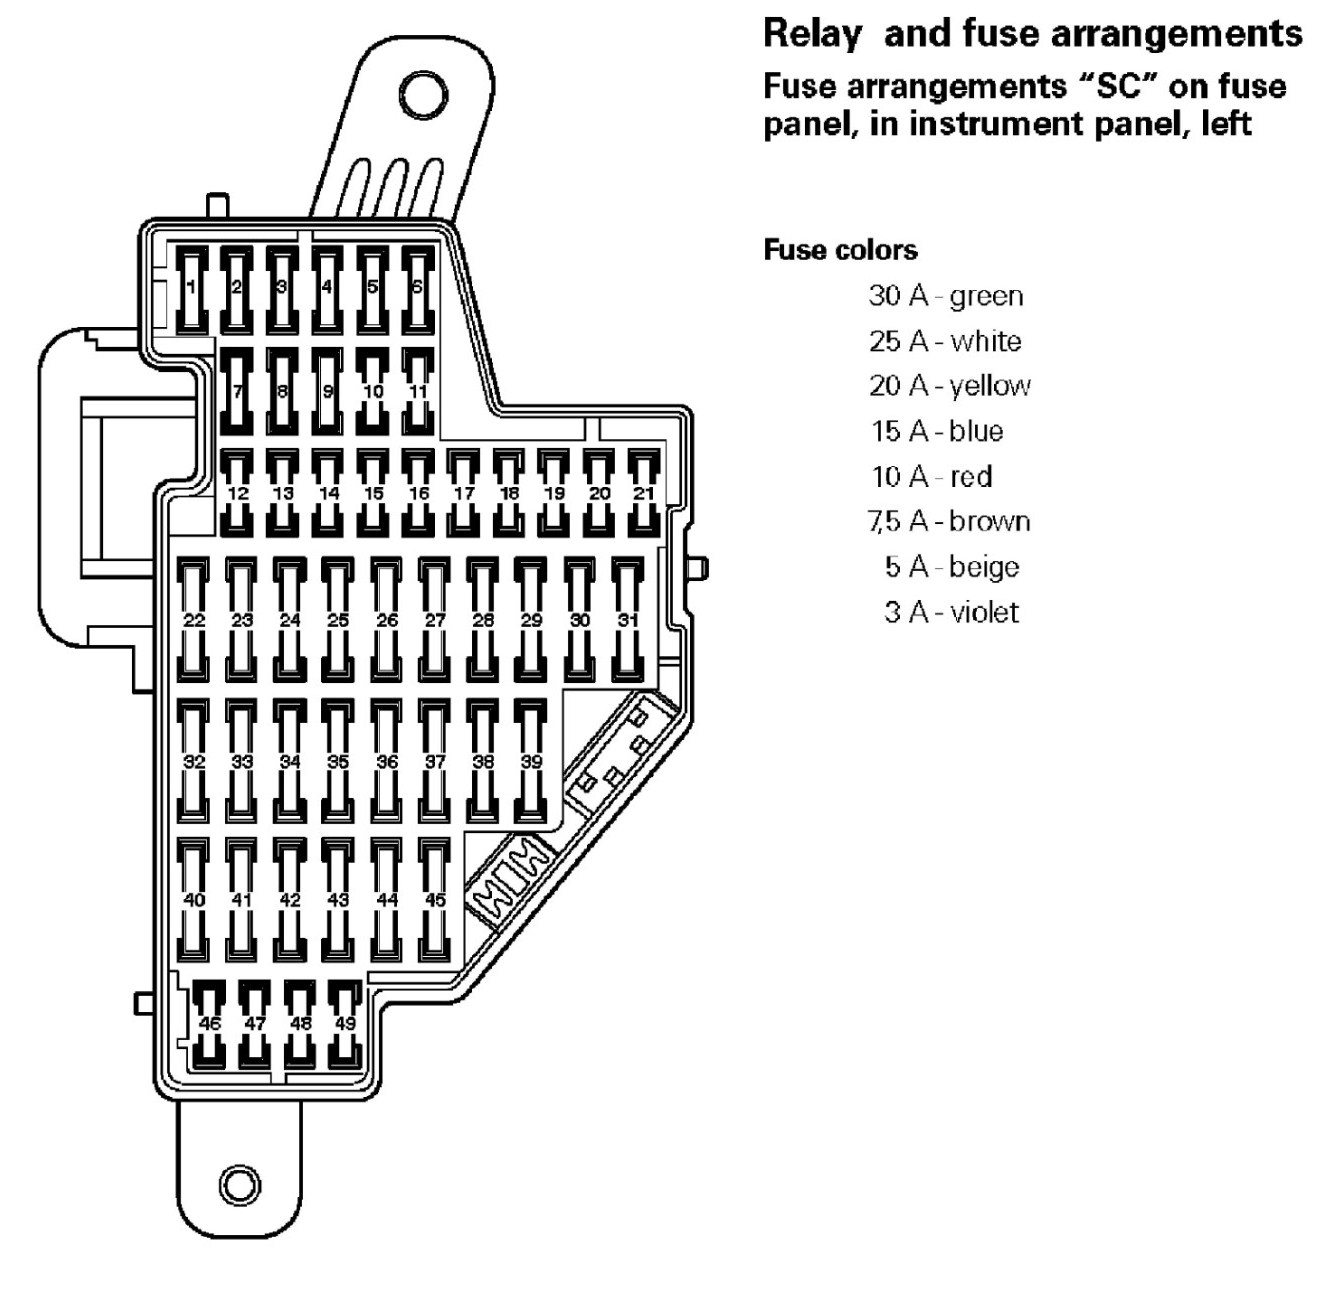 hight resolution of vw jetta 2006 fuse box diagram simple wiring schema 2006 vw jetta engine 2006 vw jetta fuse diagram